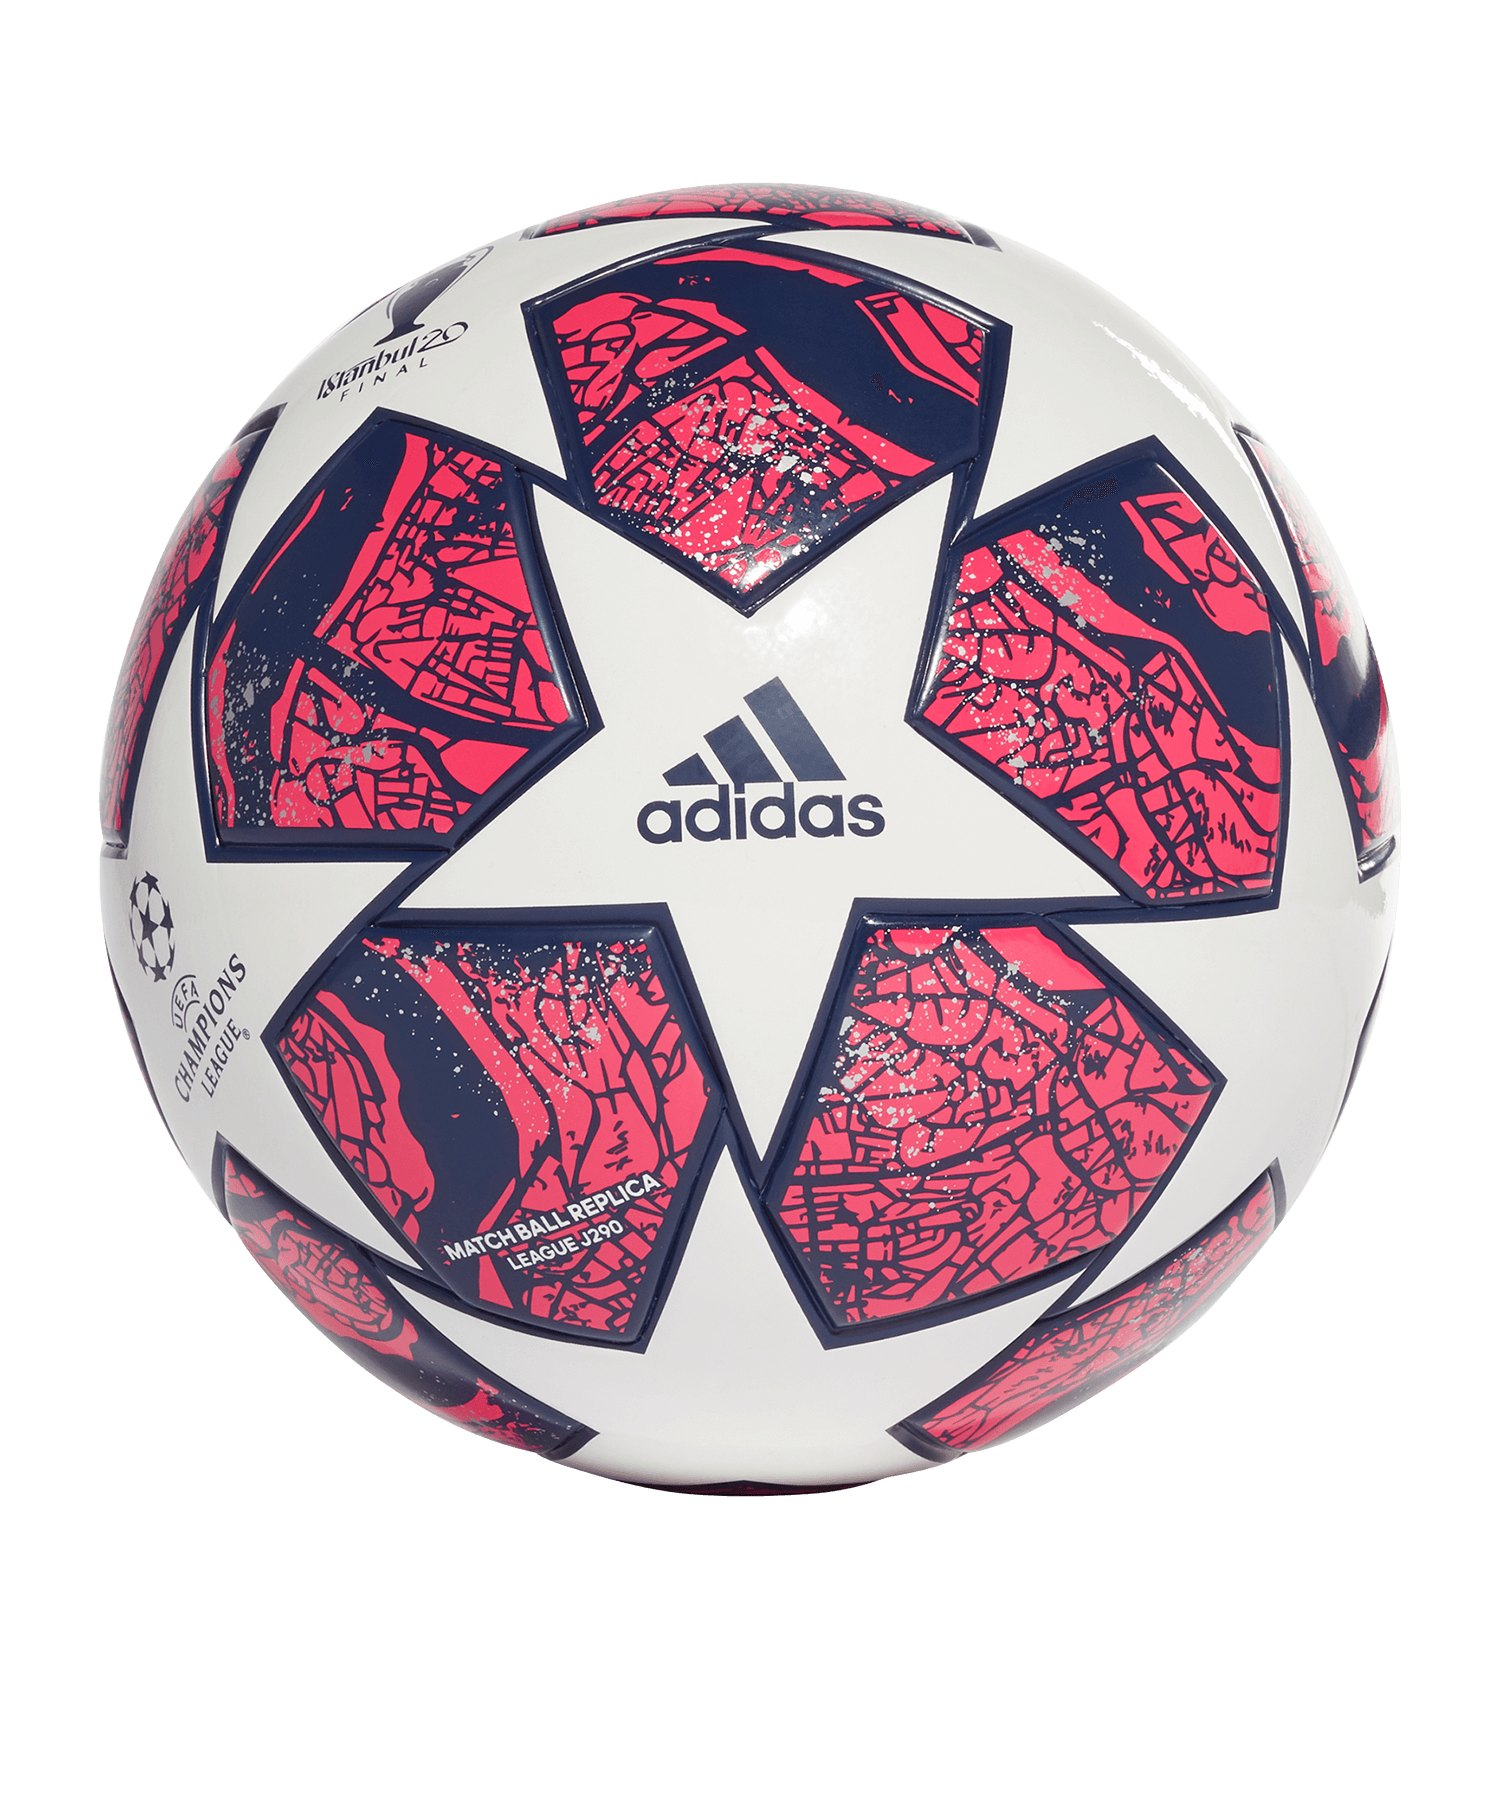 adidas Istanbul Champions League Finale Lightball 290 Weiss Blau - weiss